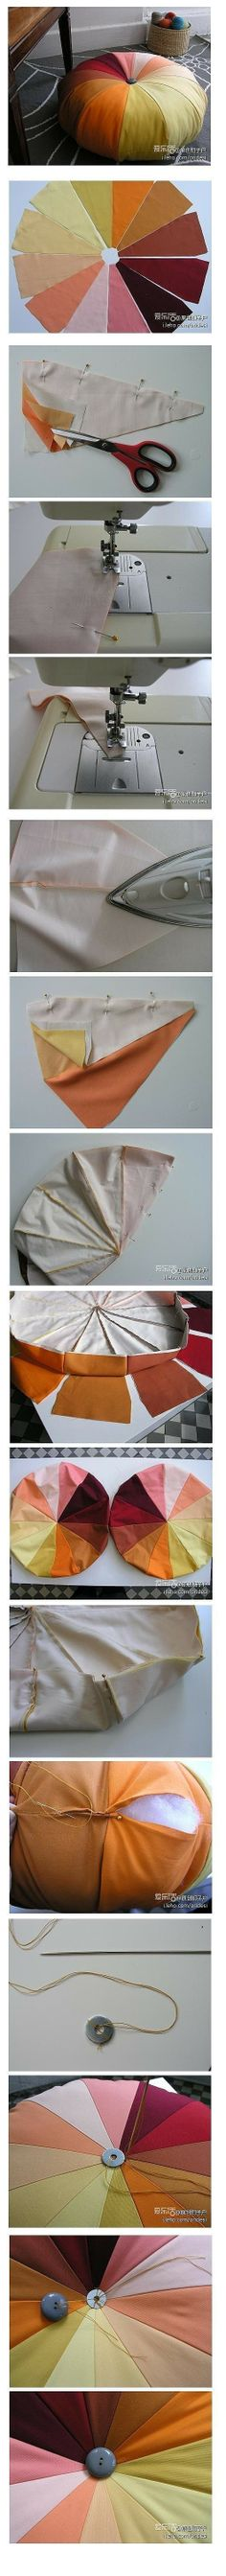 DIY Pumpkin Cushion ~so cool, I may do this instead of square pillows with the quilts Fabric Crafts, Sewing Crafts, Sewing Projects, Diy Crafts, Scrap Fabric, Fall Crafts, Diy Projects, Teen Crafts, Home Crafts